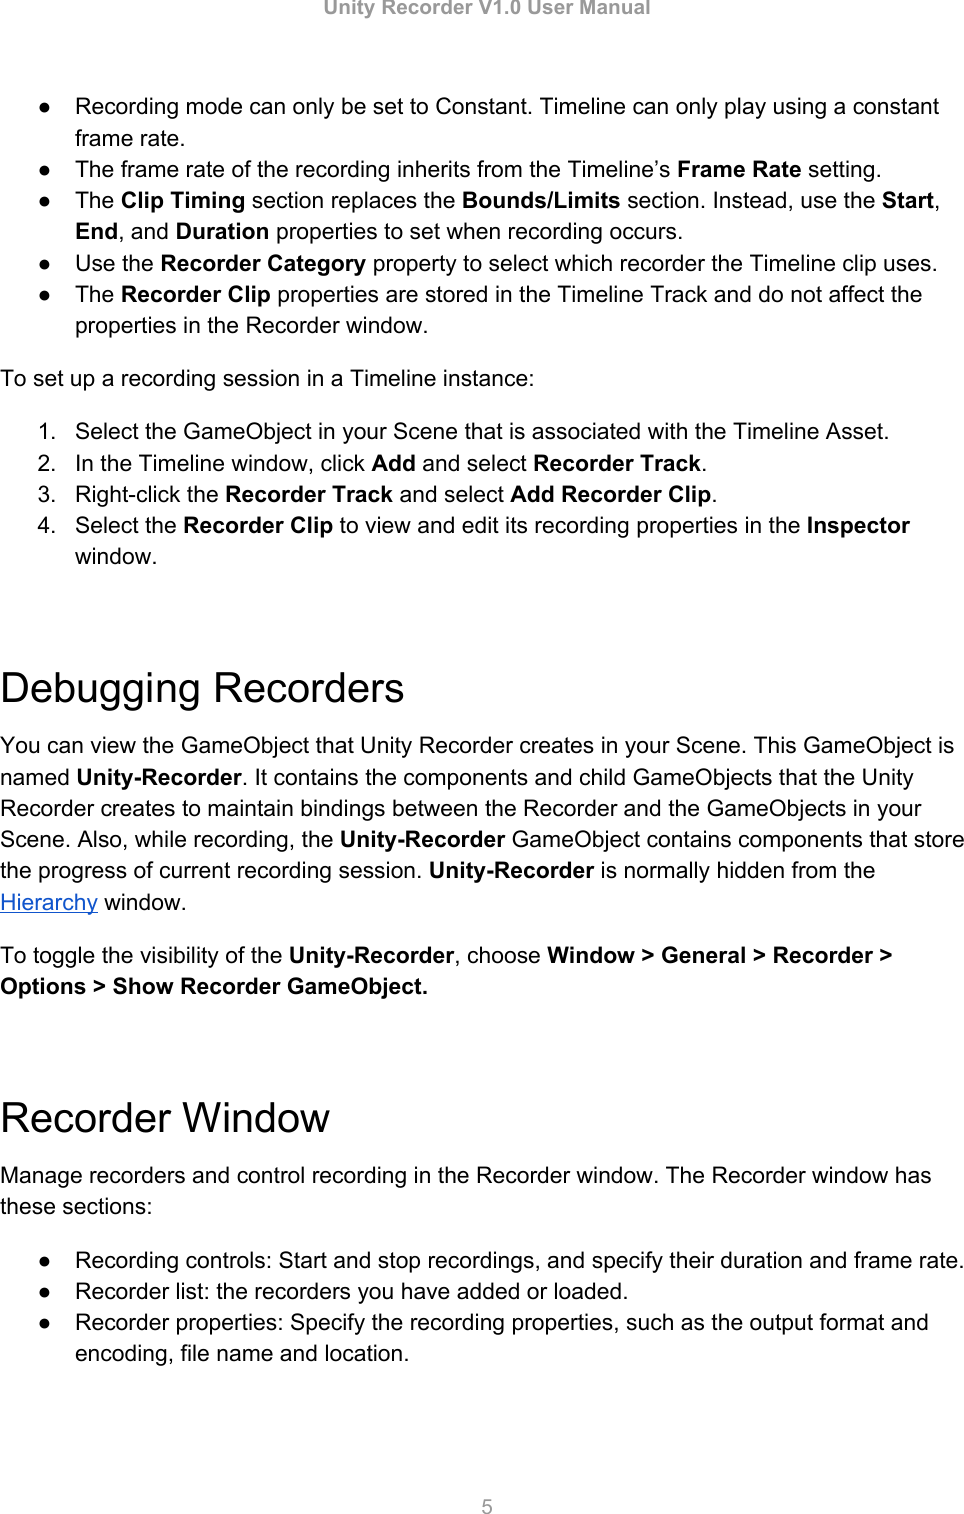 Unity Recorder V1User Manual